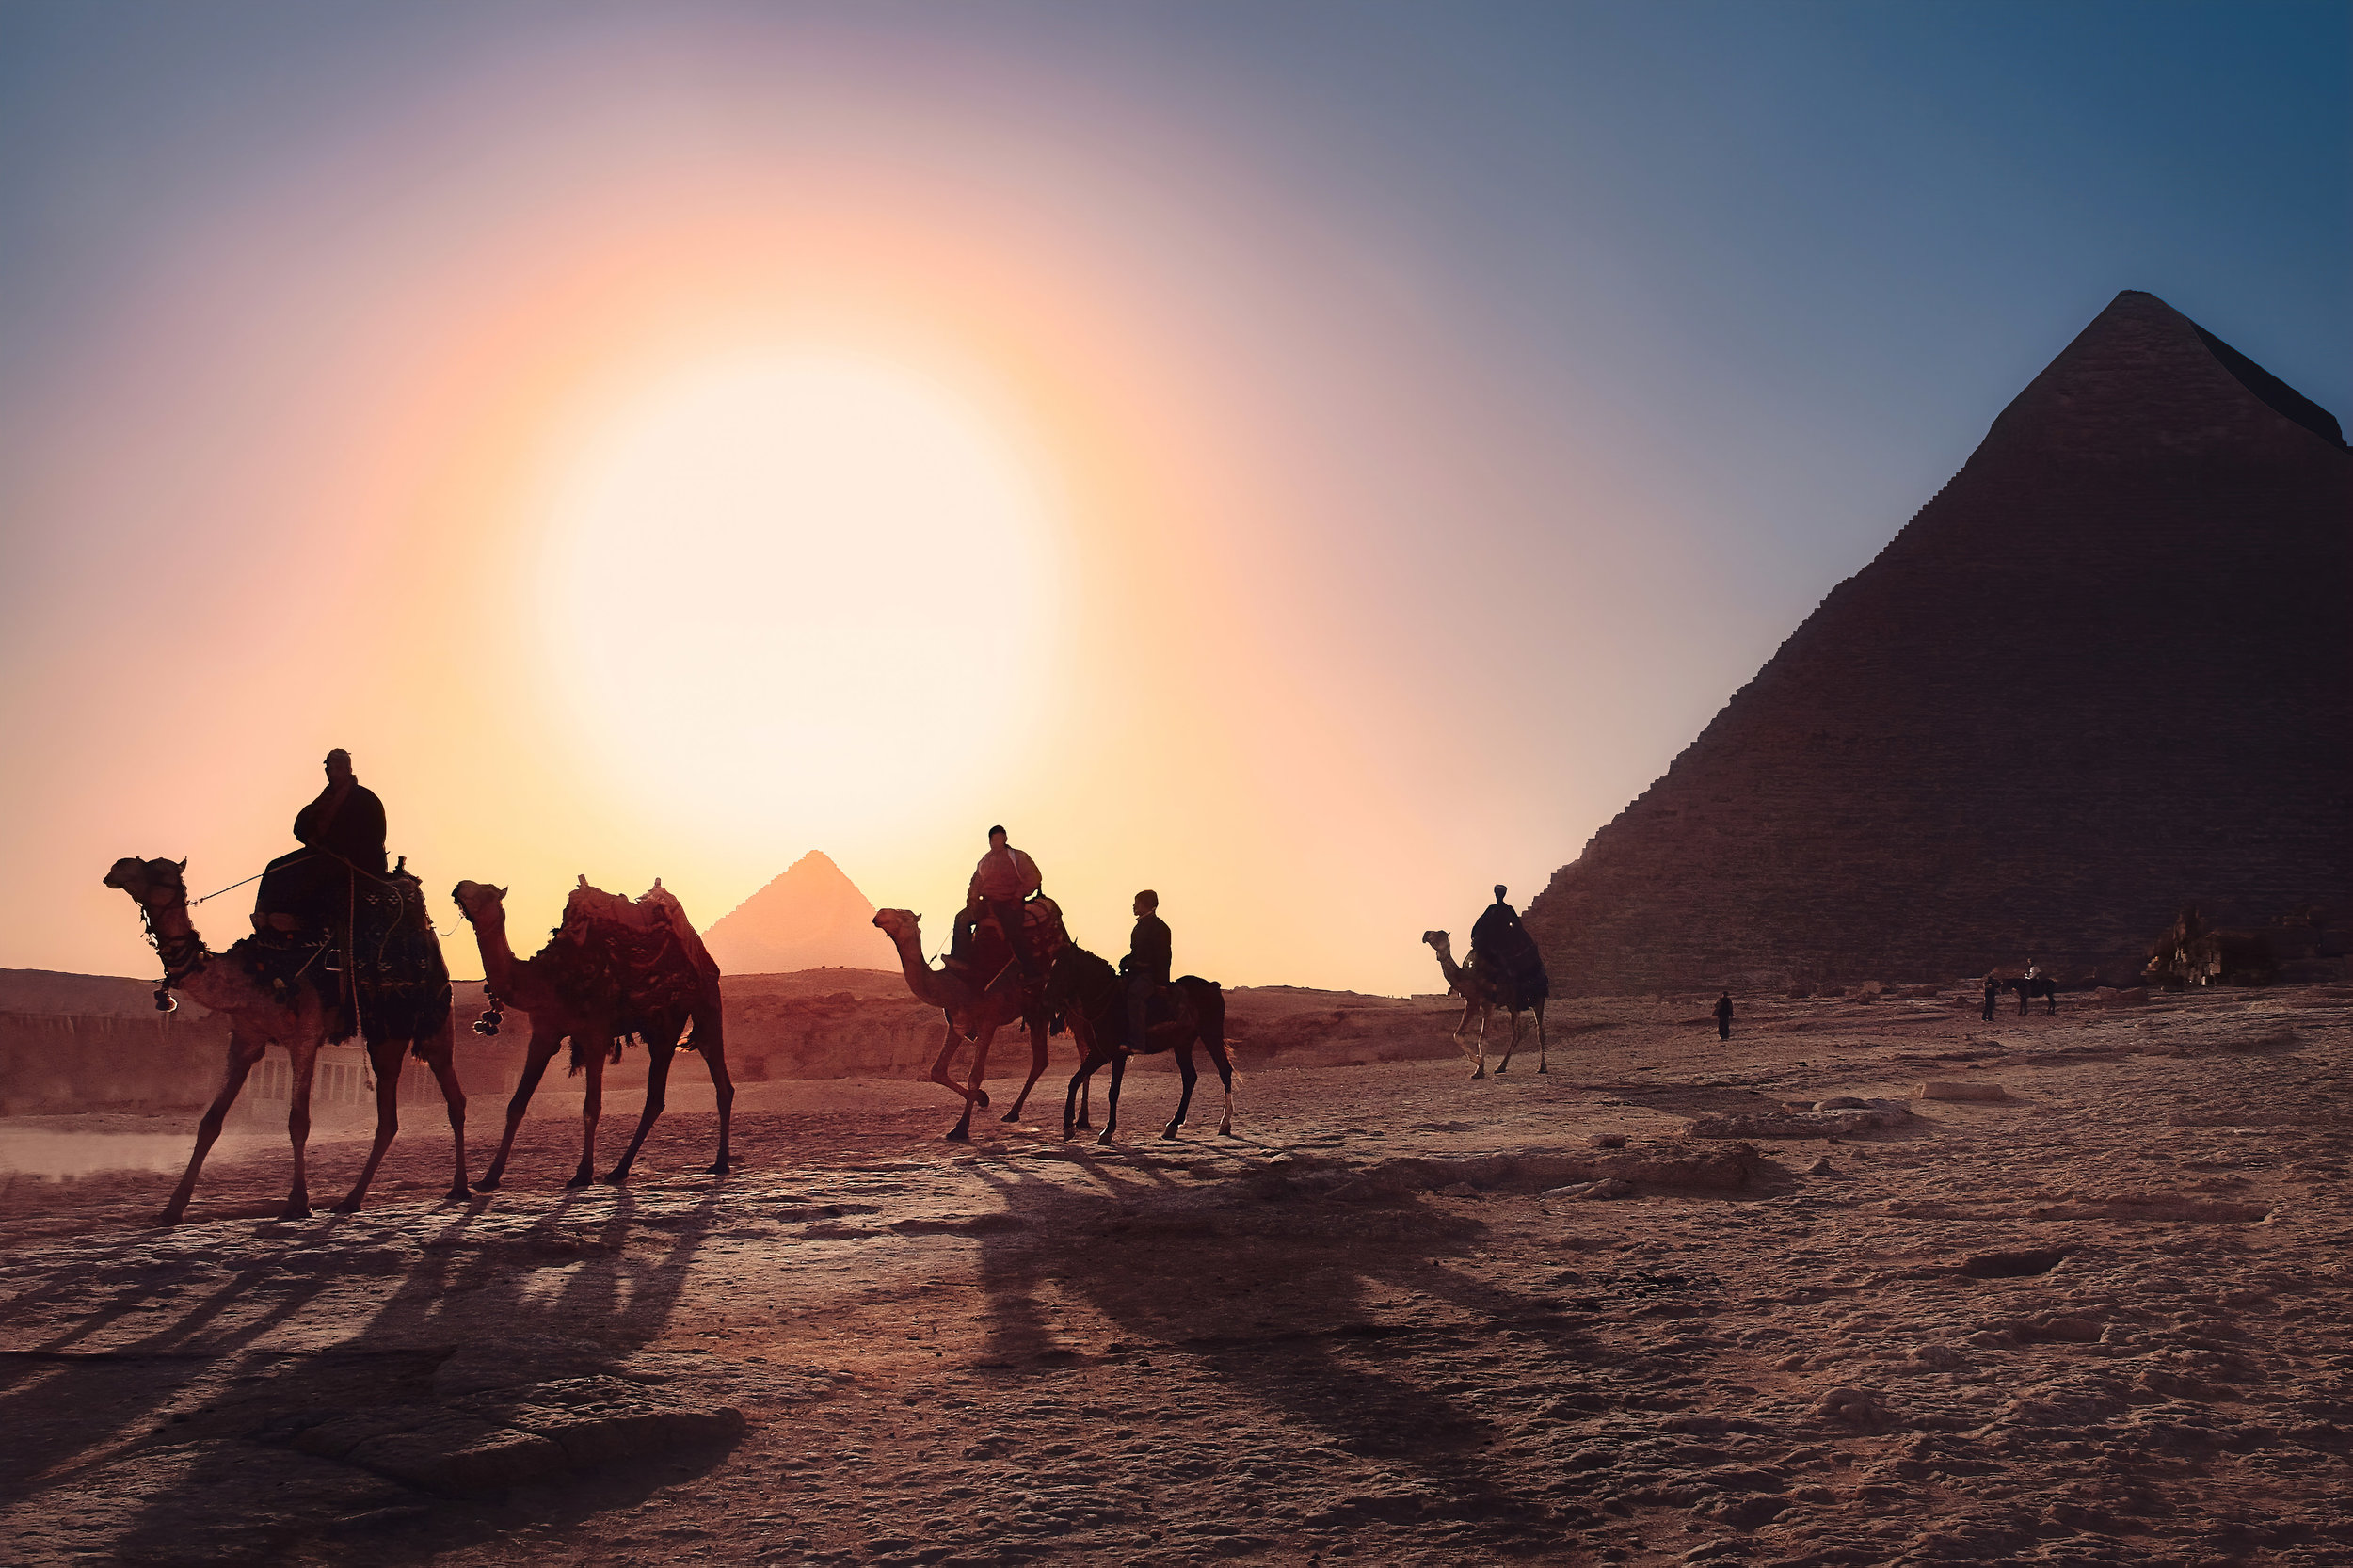 Sunset at the Pyramids of Egypt